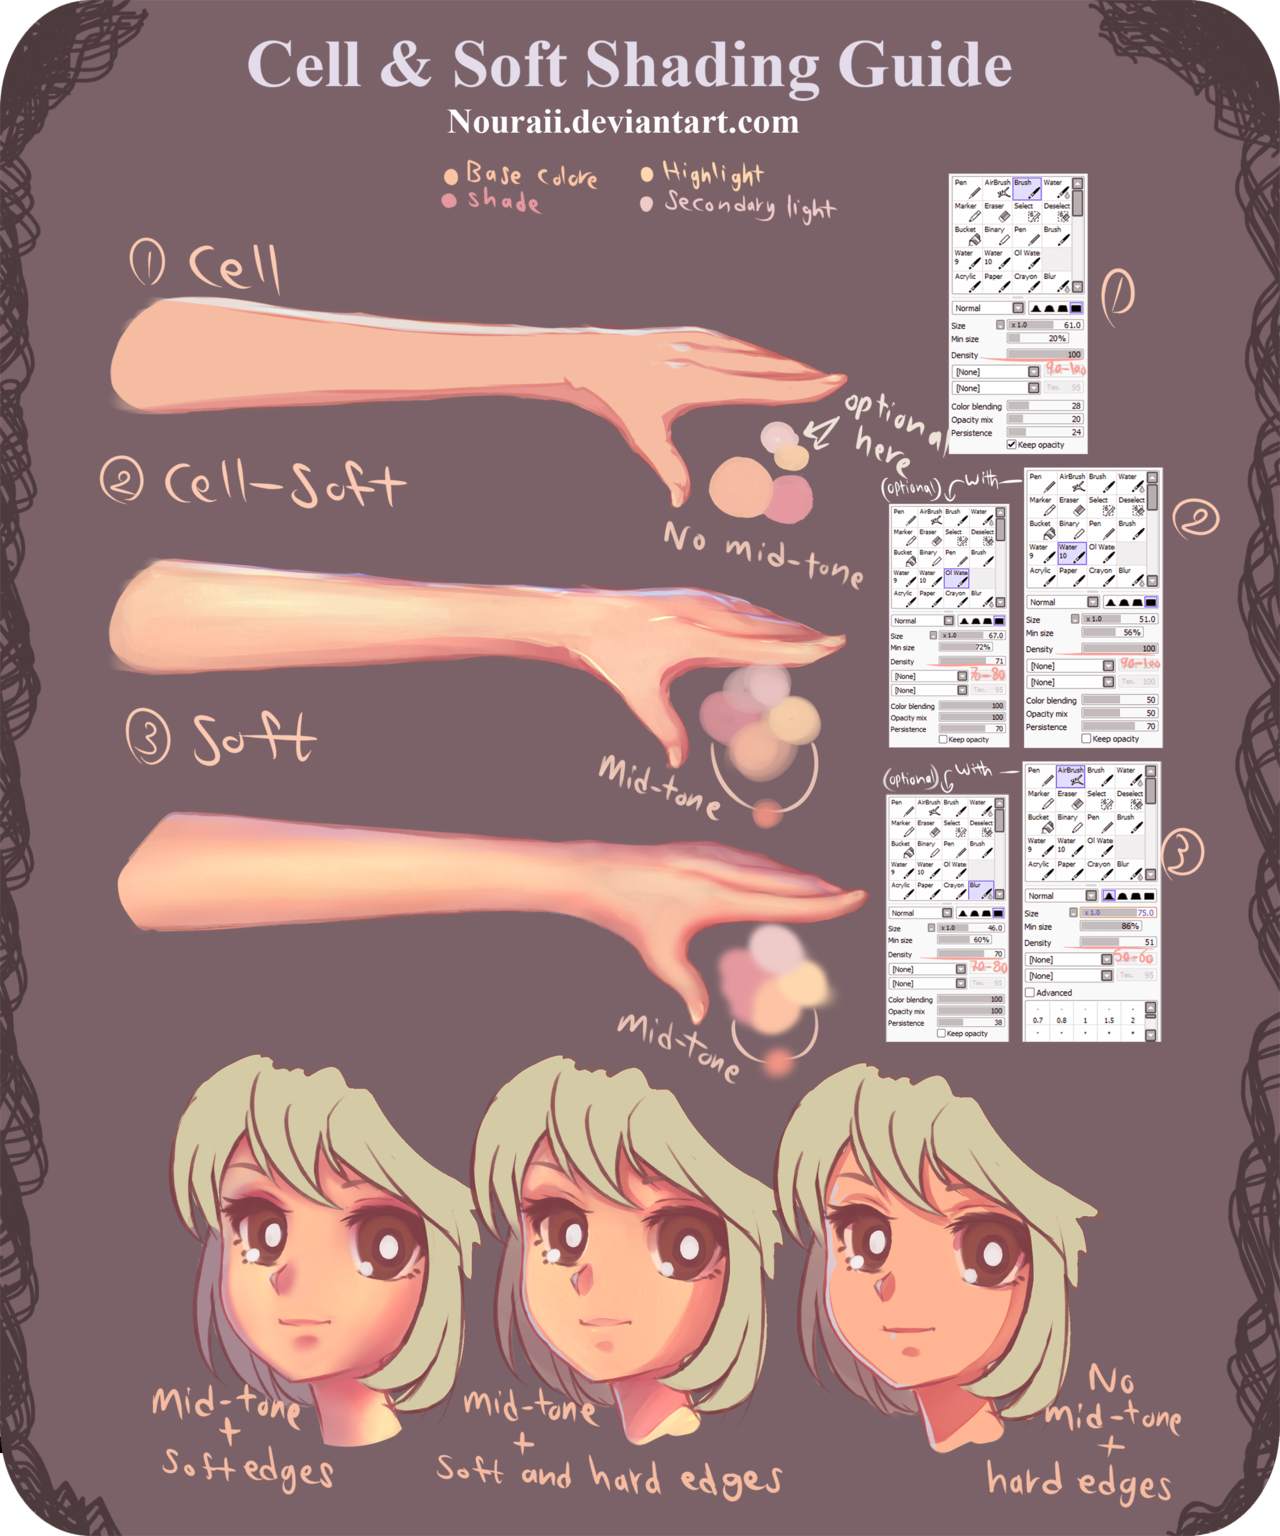 Soft And Cell Shading Guide Psd File By Nouraii On Deviantart Concept Art Tutorial Digital Painting Tutorials Digital Art Tutorial